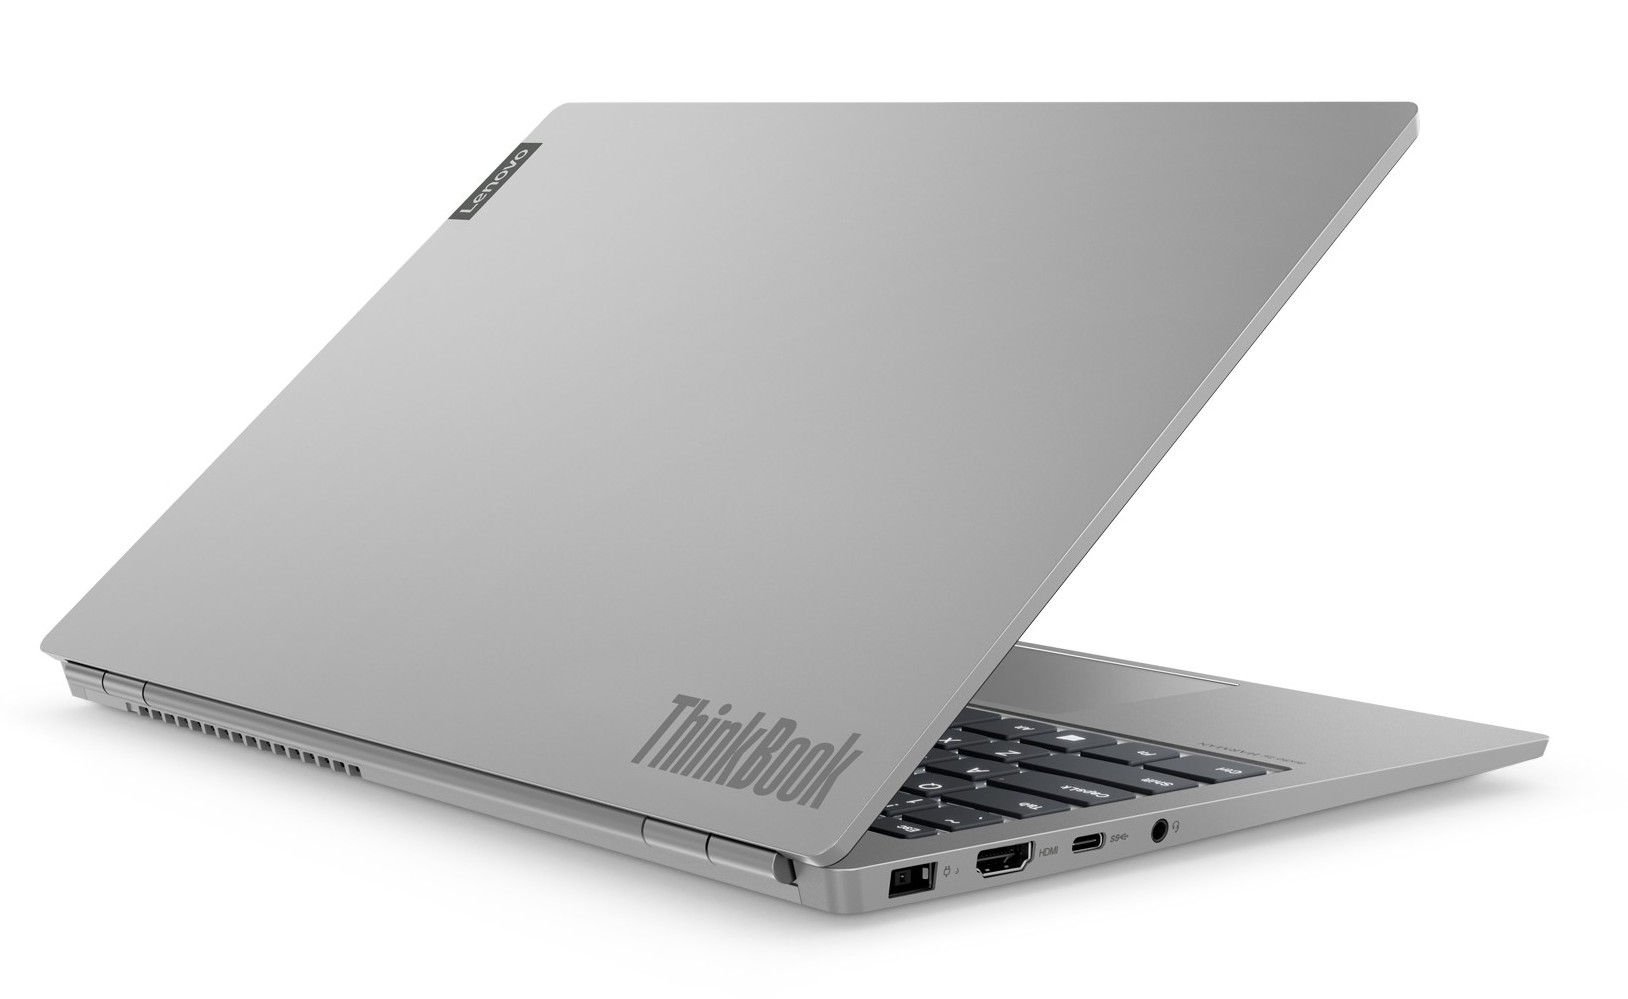 sku lenovo thinkbook 13s